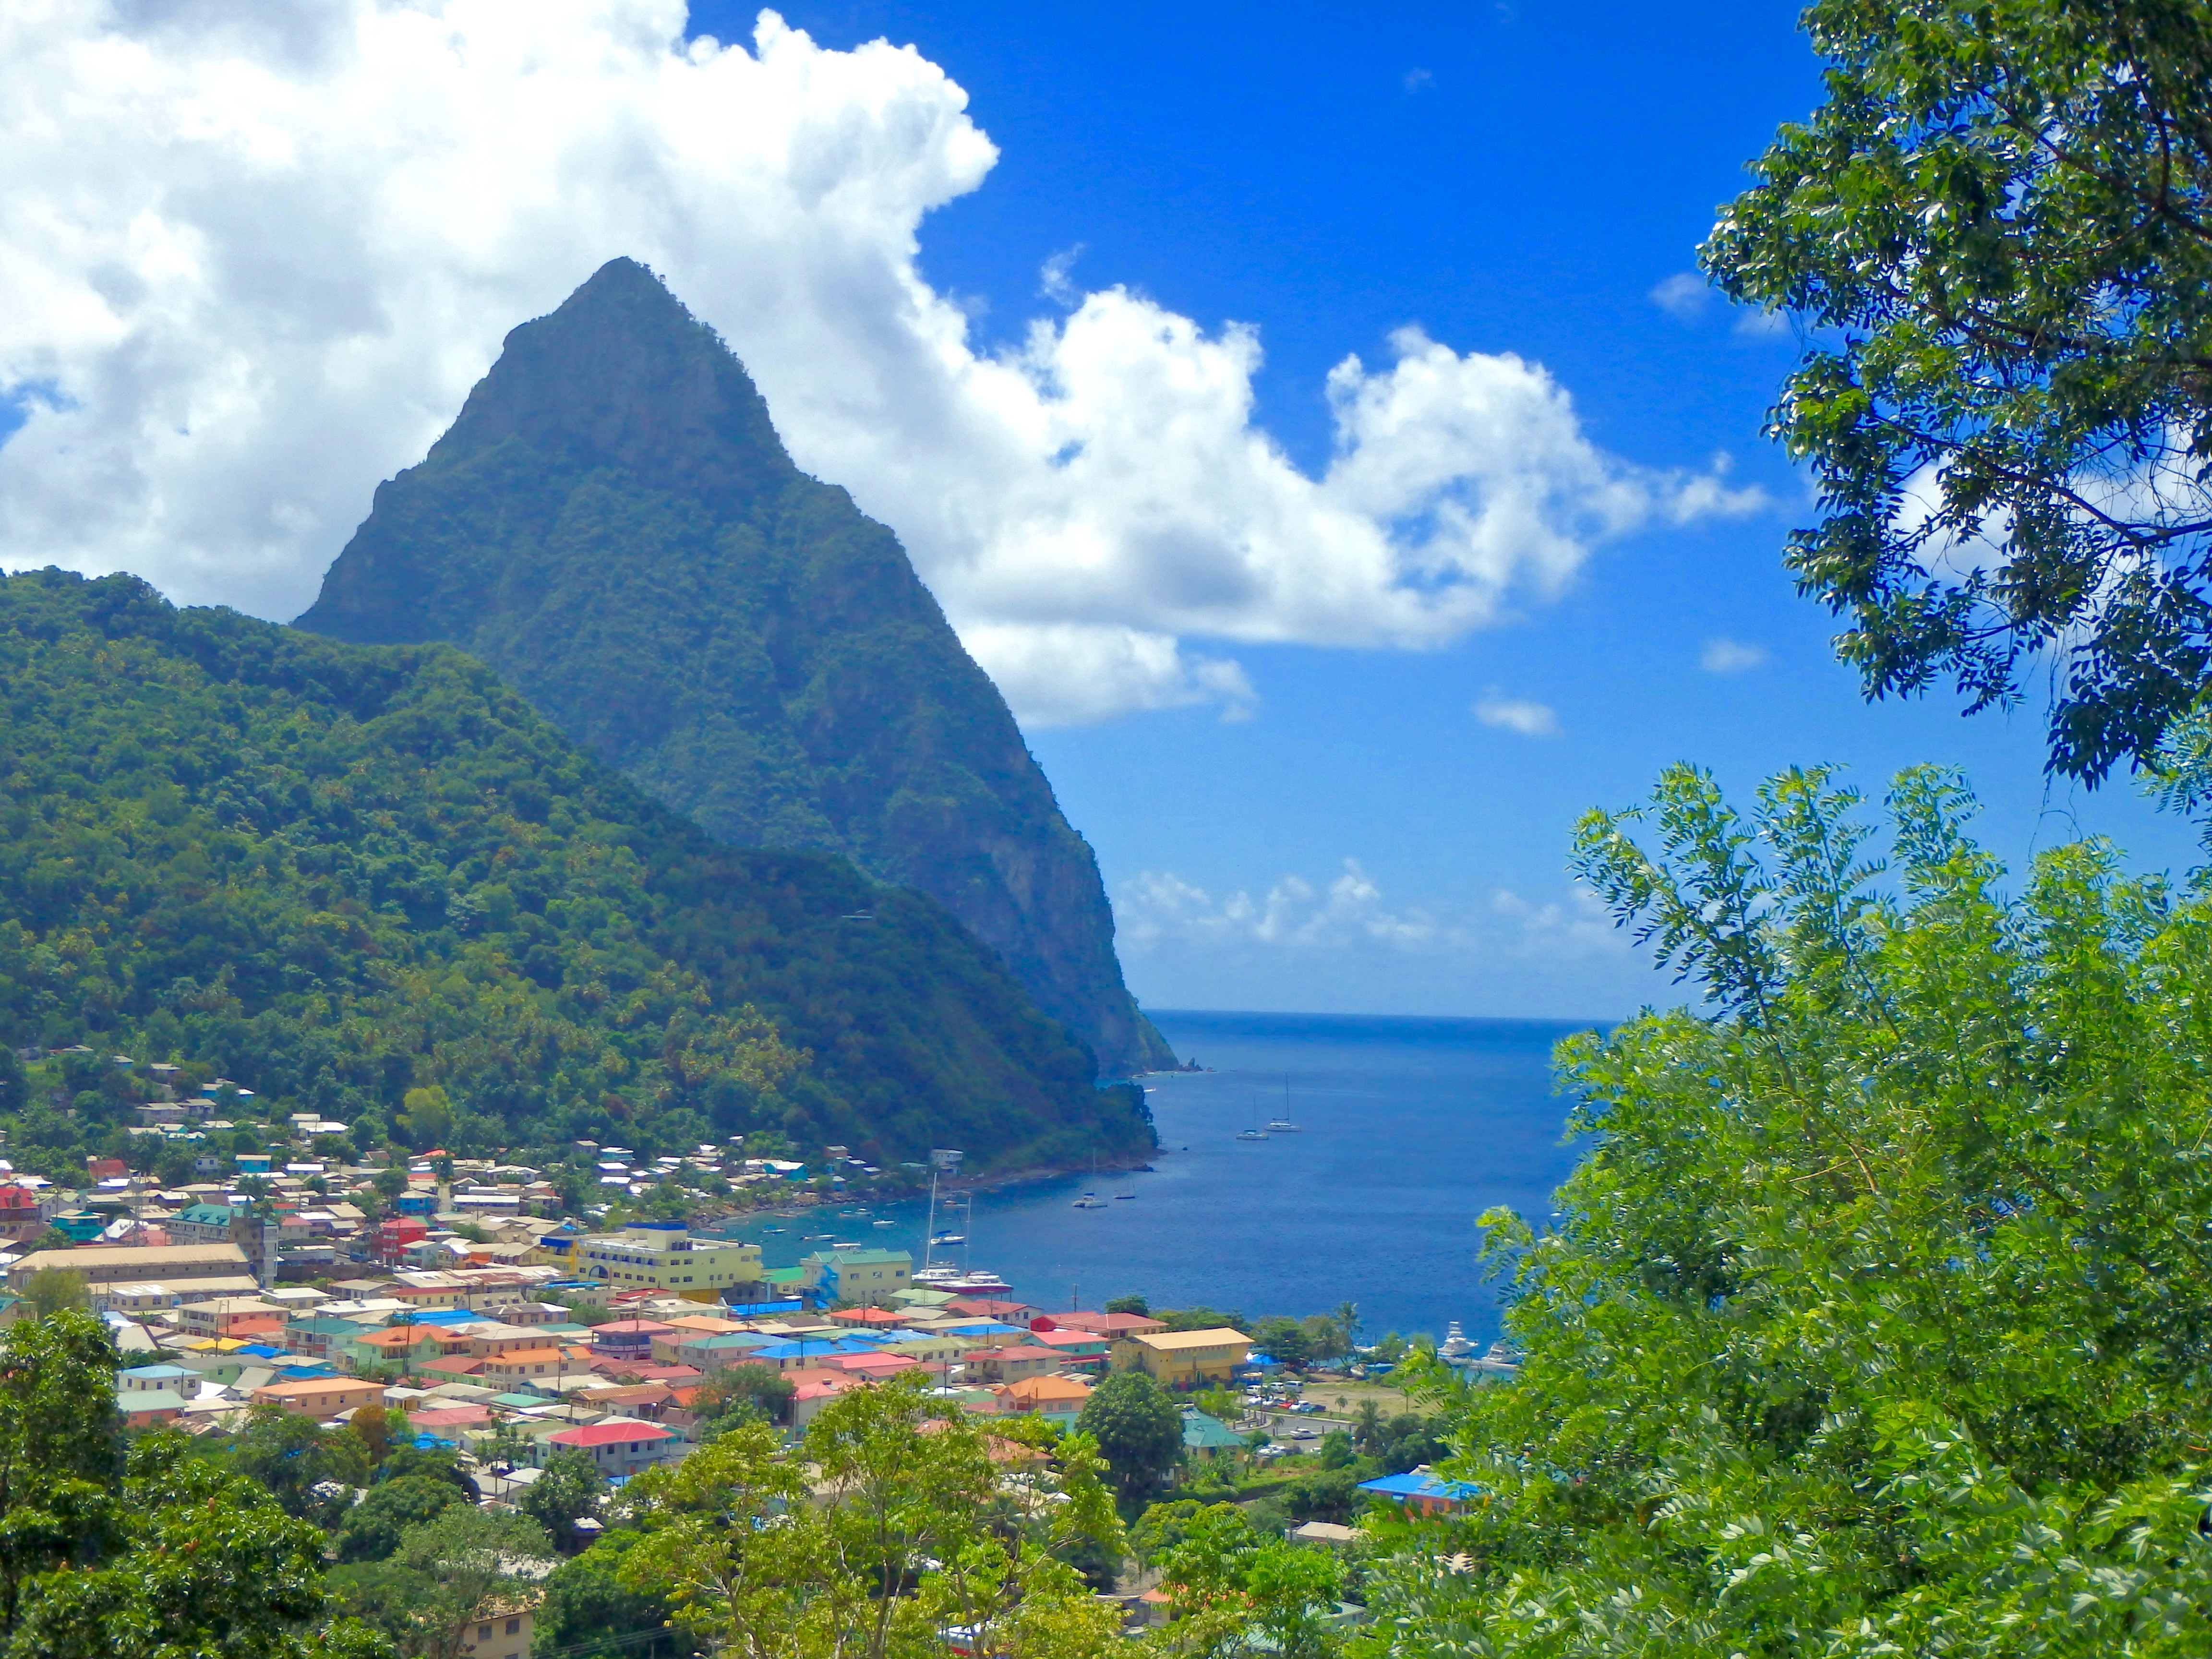 A Quick Travel Guide for St Lucia Vacations - A Caribbean Island ...